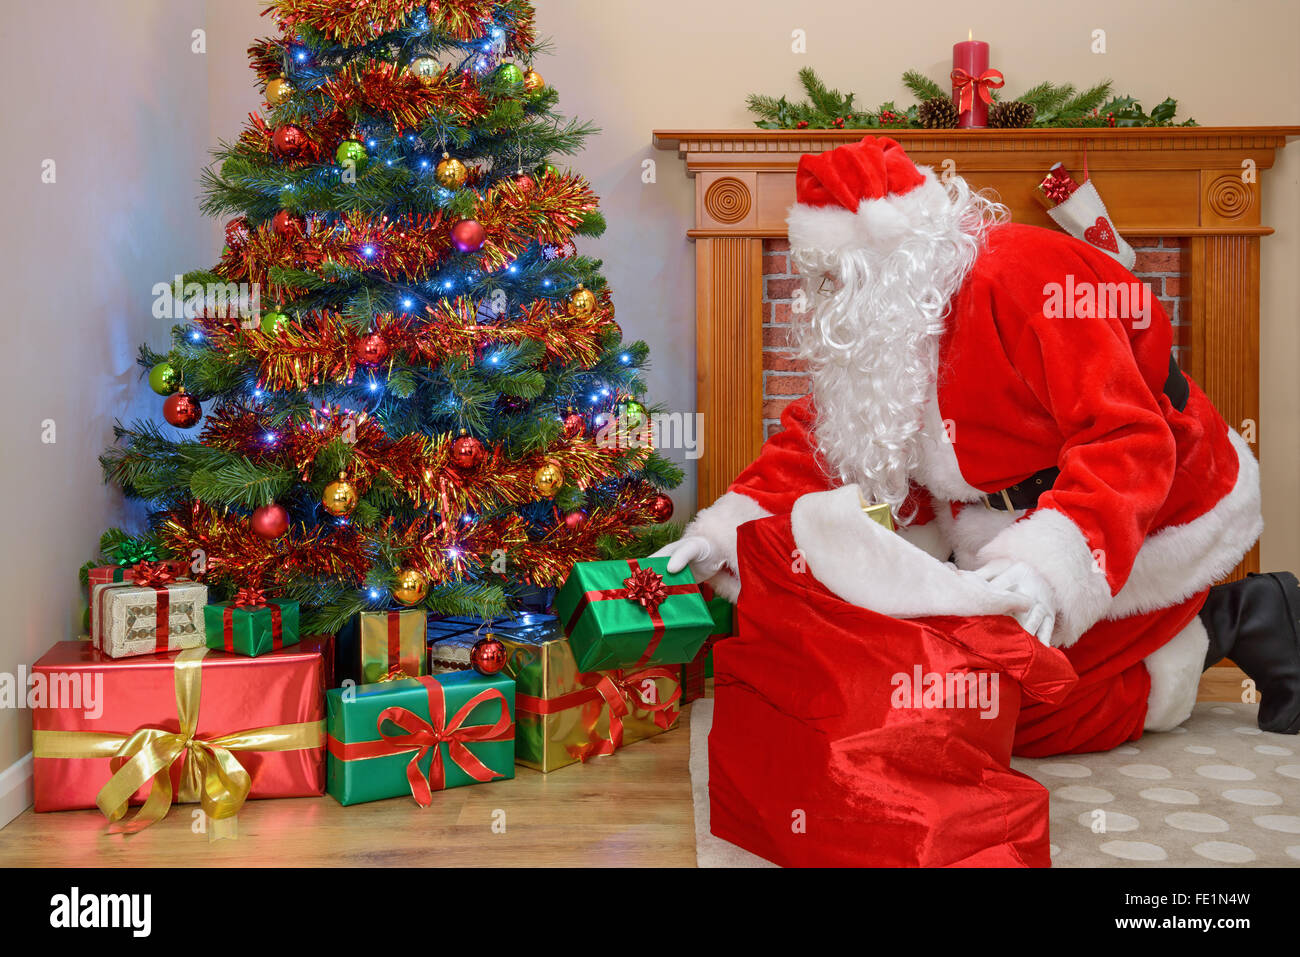 santa claus delivering presents to a house and taking gifts from his sack - Santa Claus With Presents